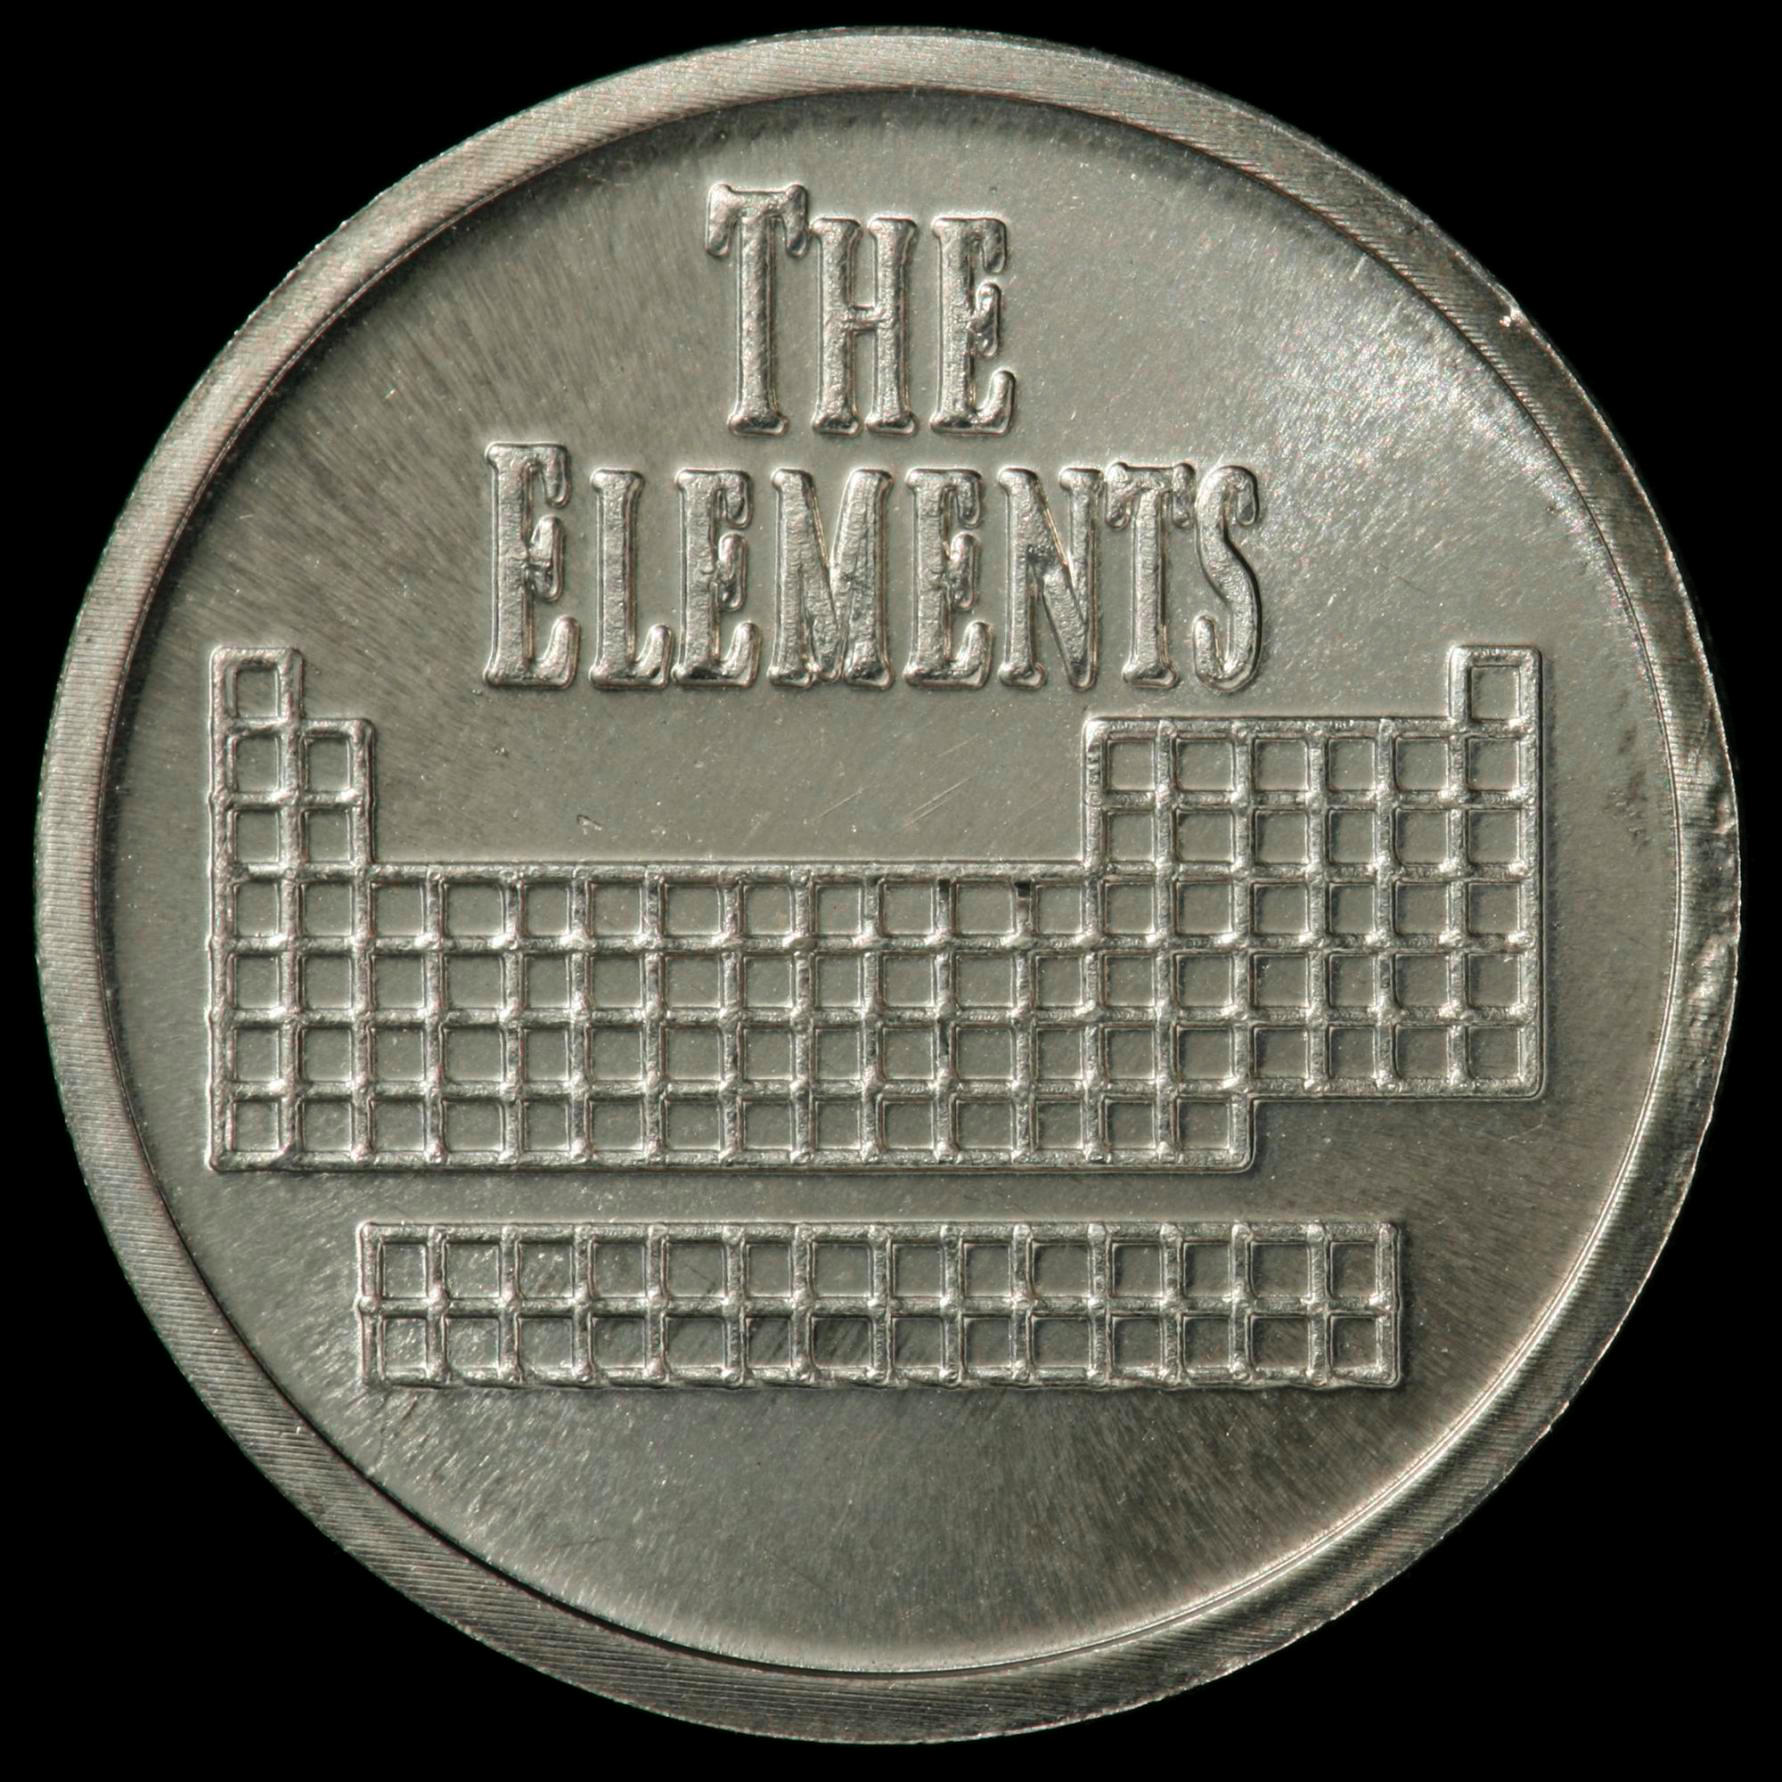 Sample Of The Element Nickel In The Periodic Table